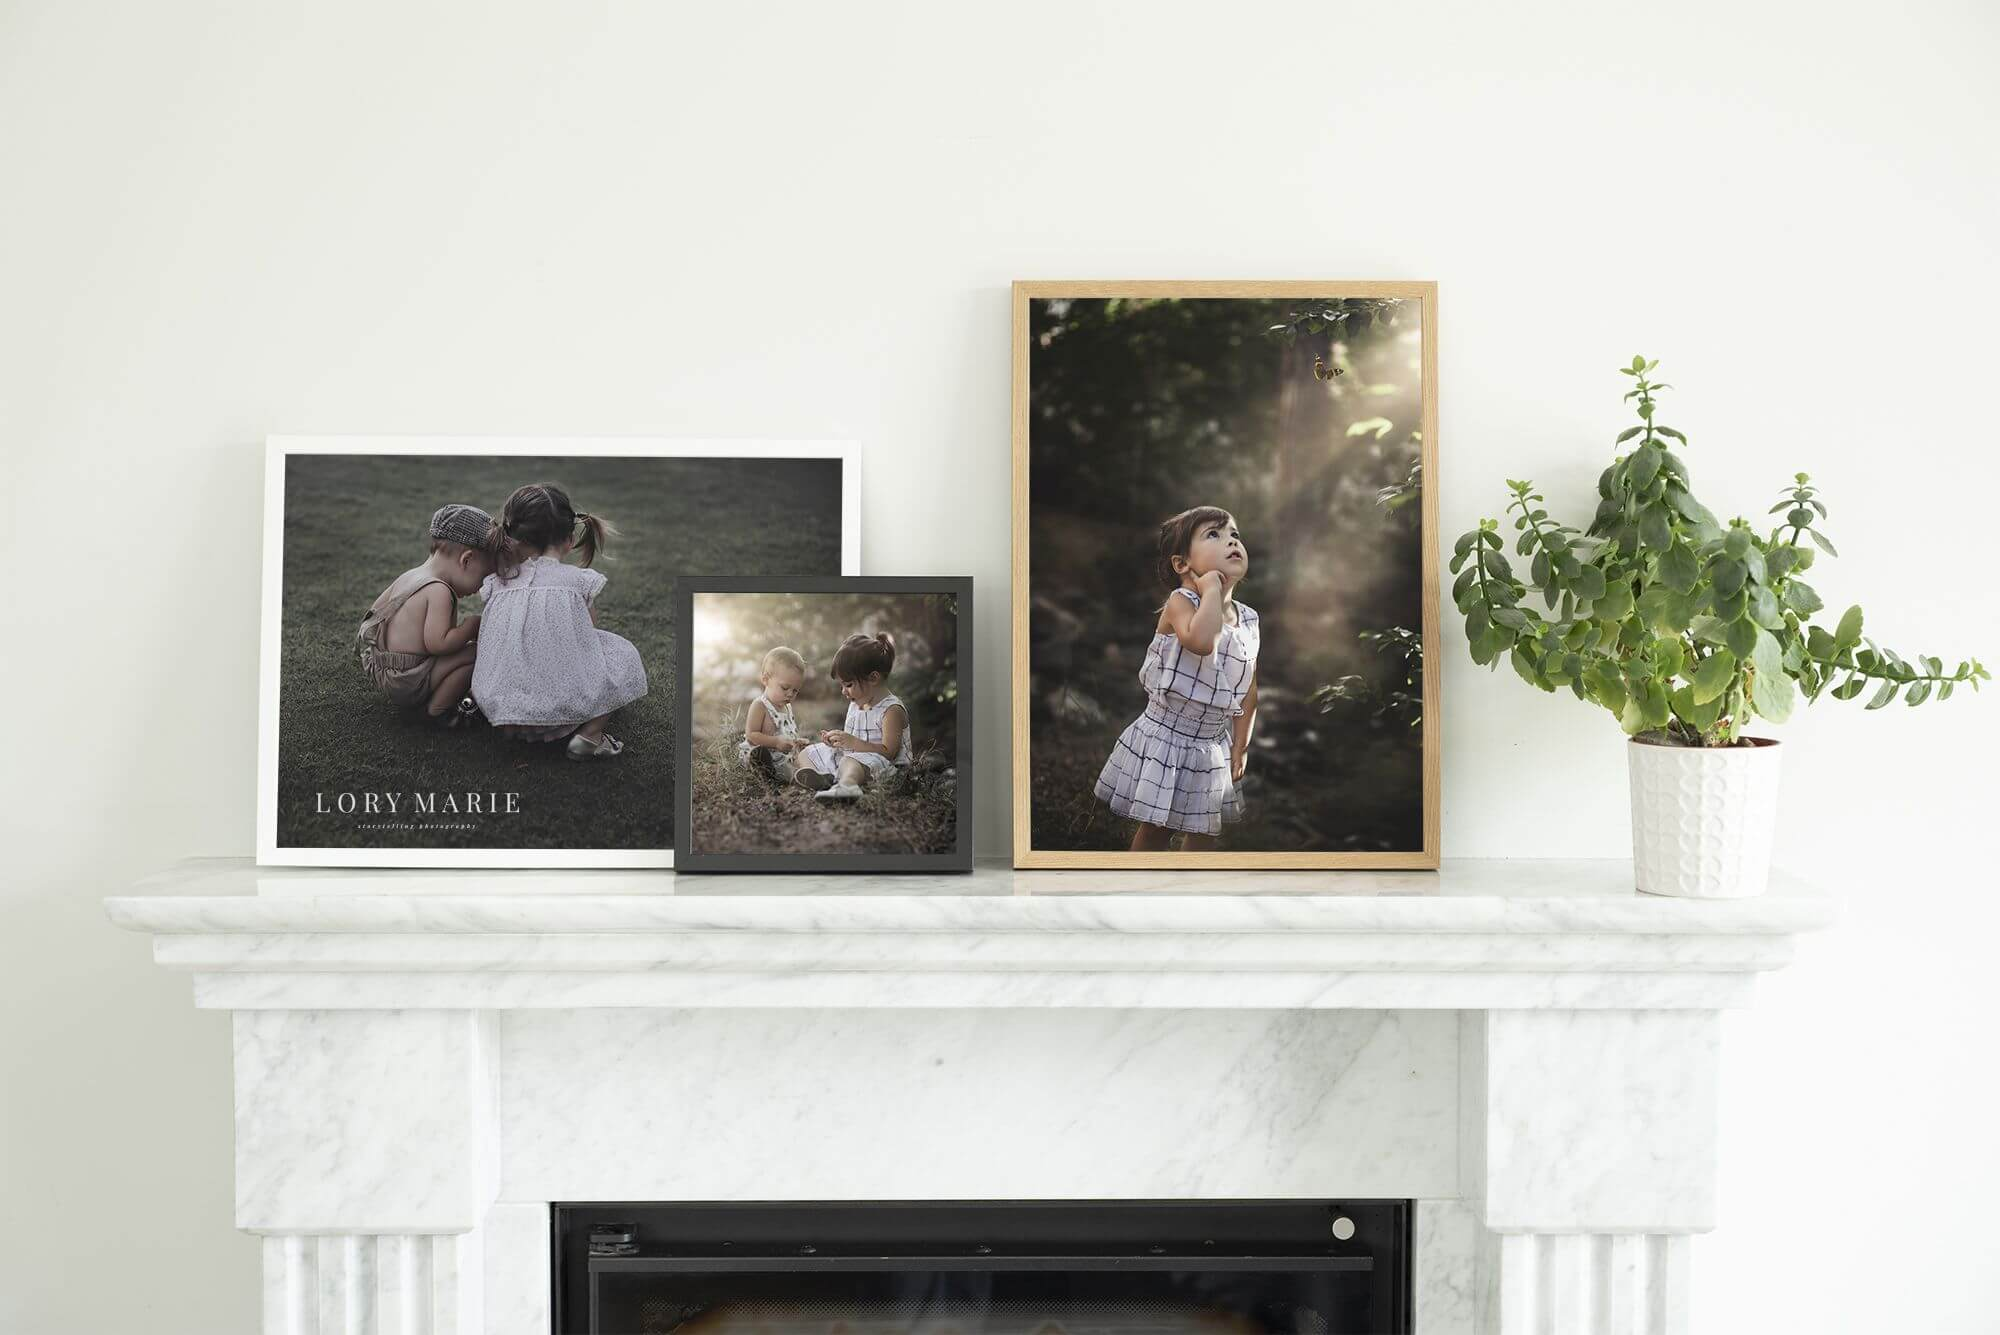 Children Photography by Lory Marie - Framed Prints